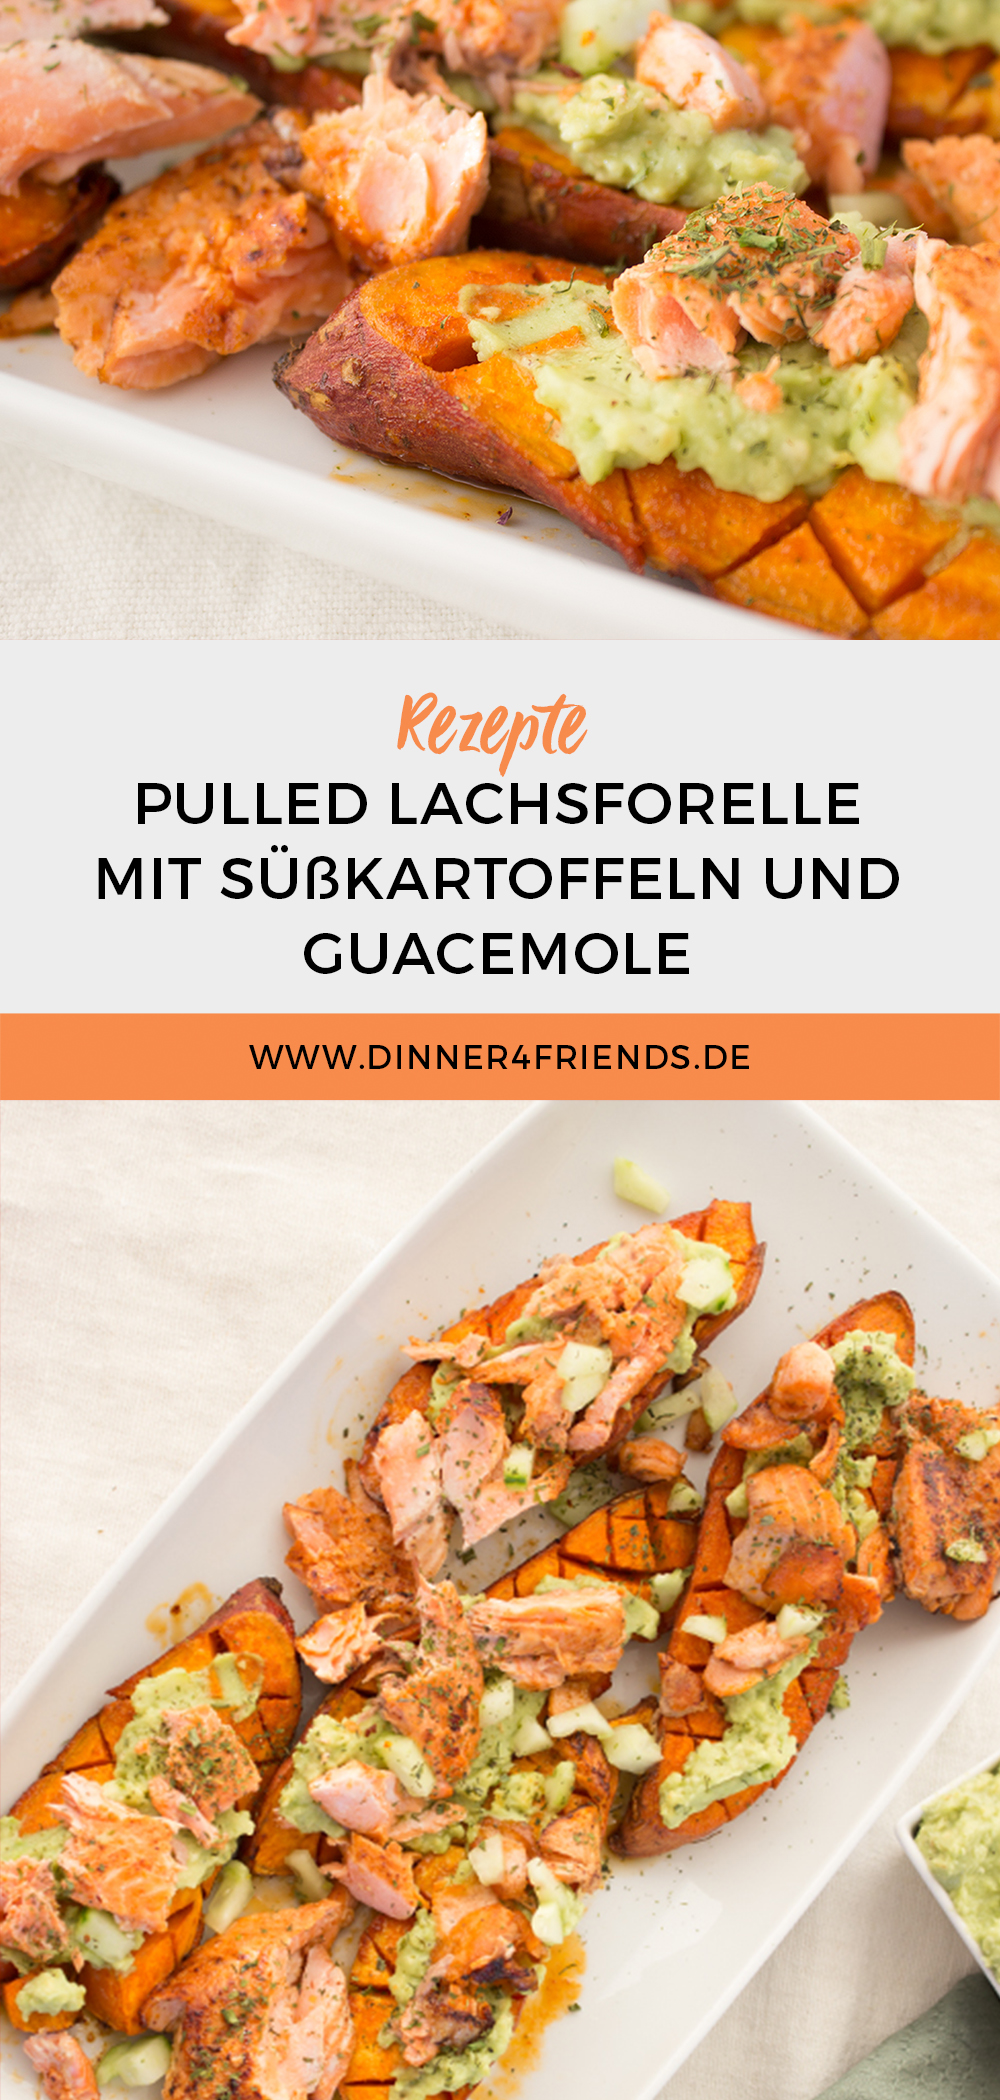 Pulled Lachsforelle mit Guacamole